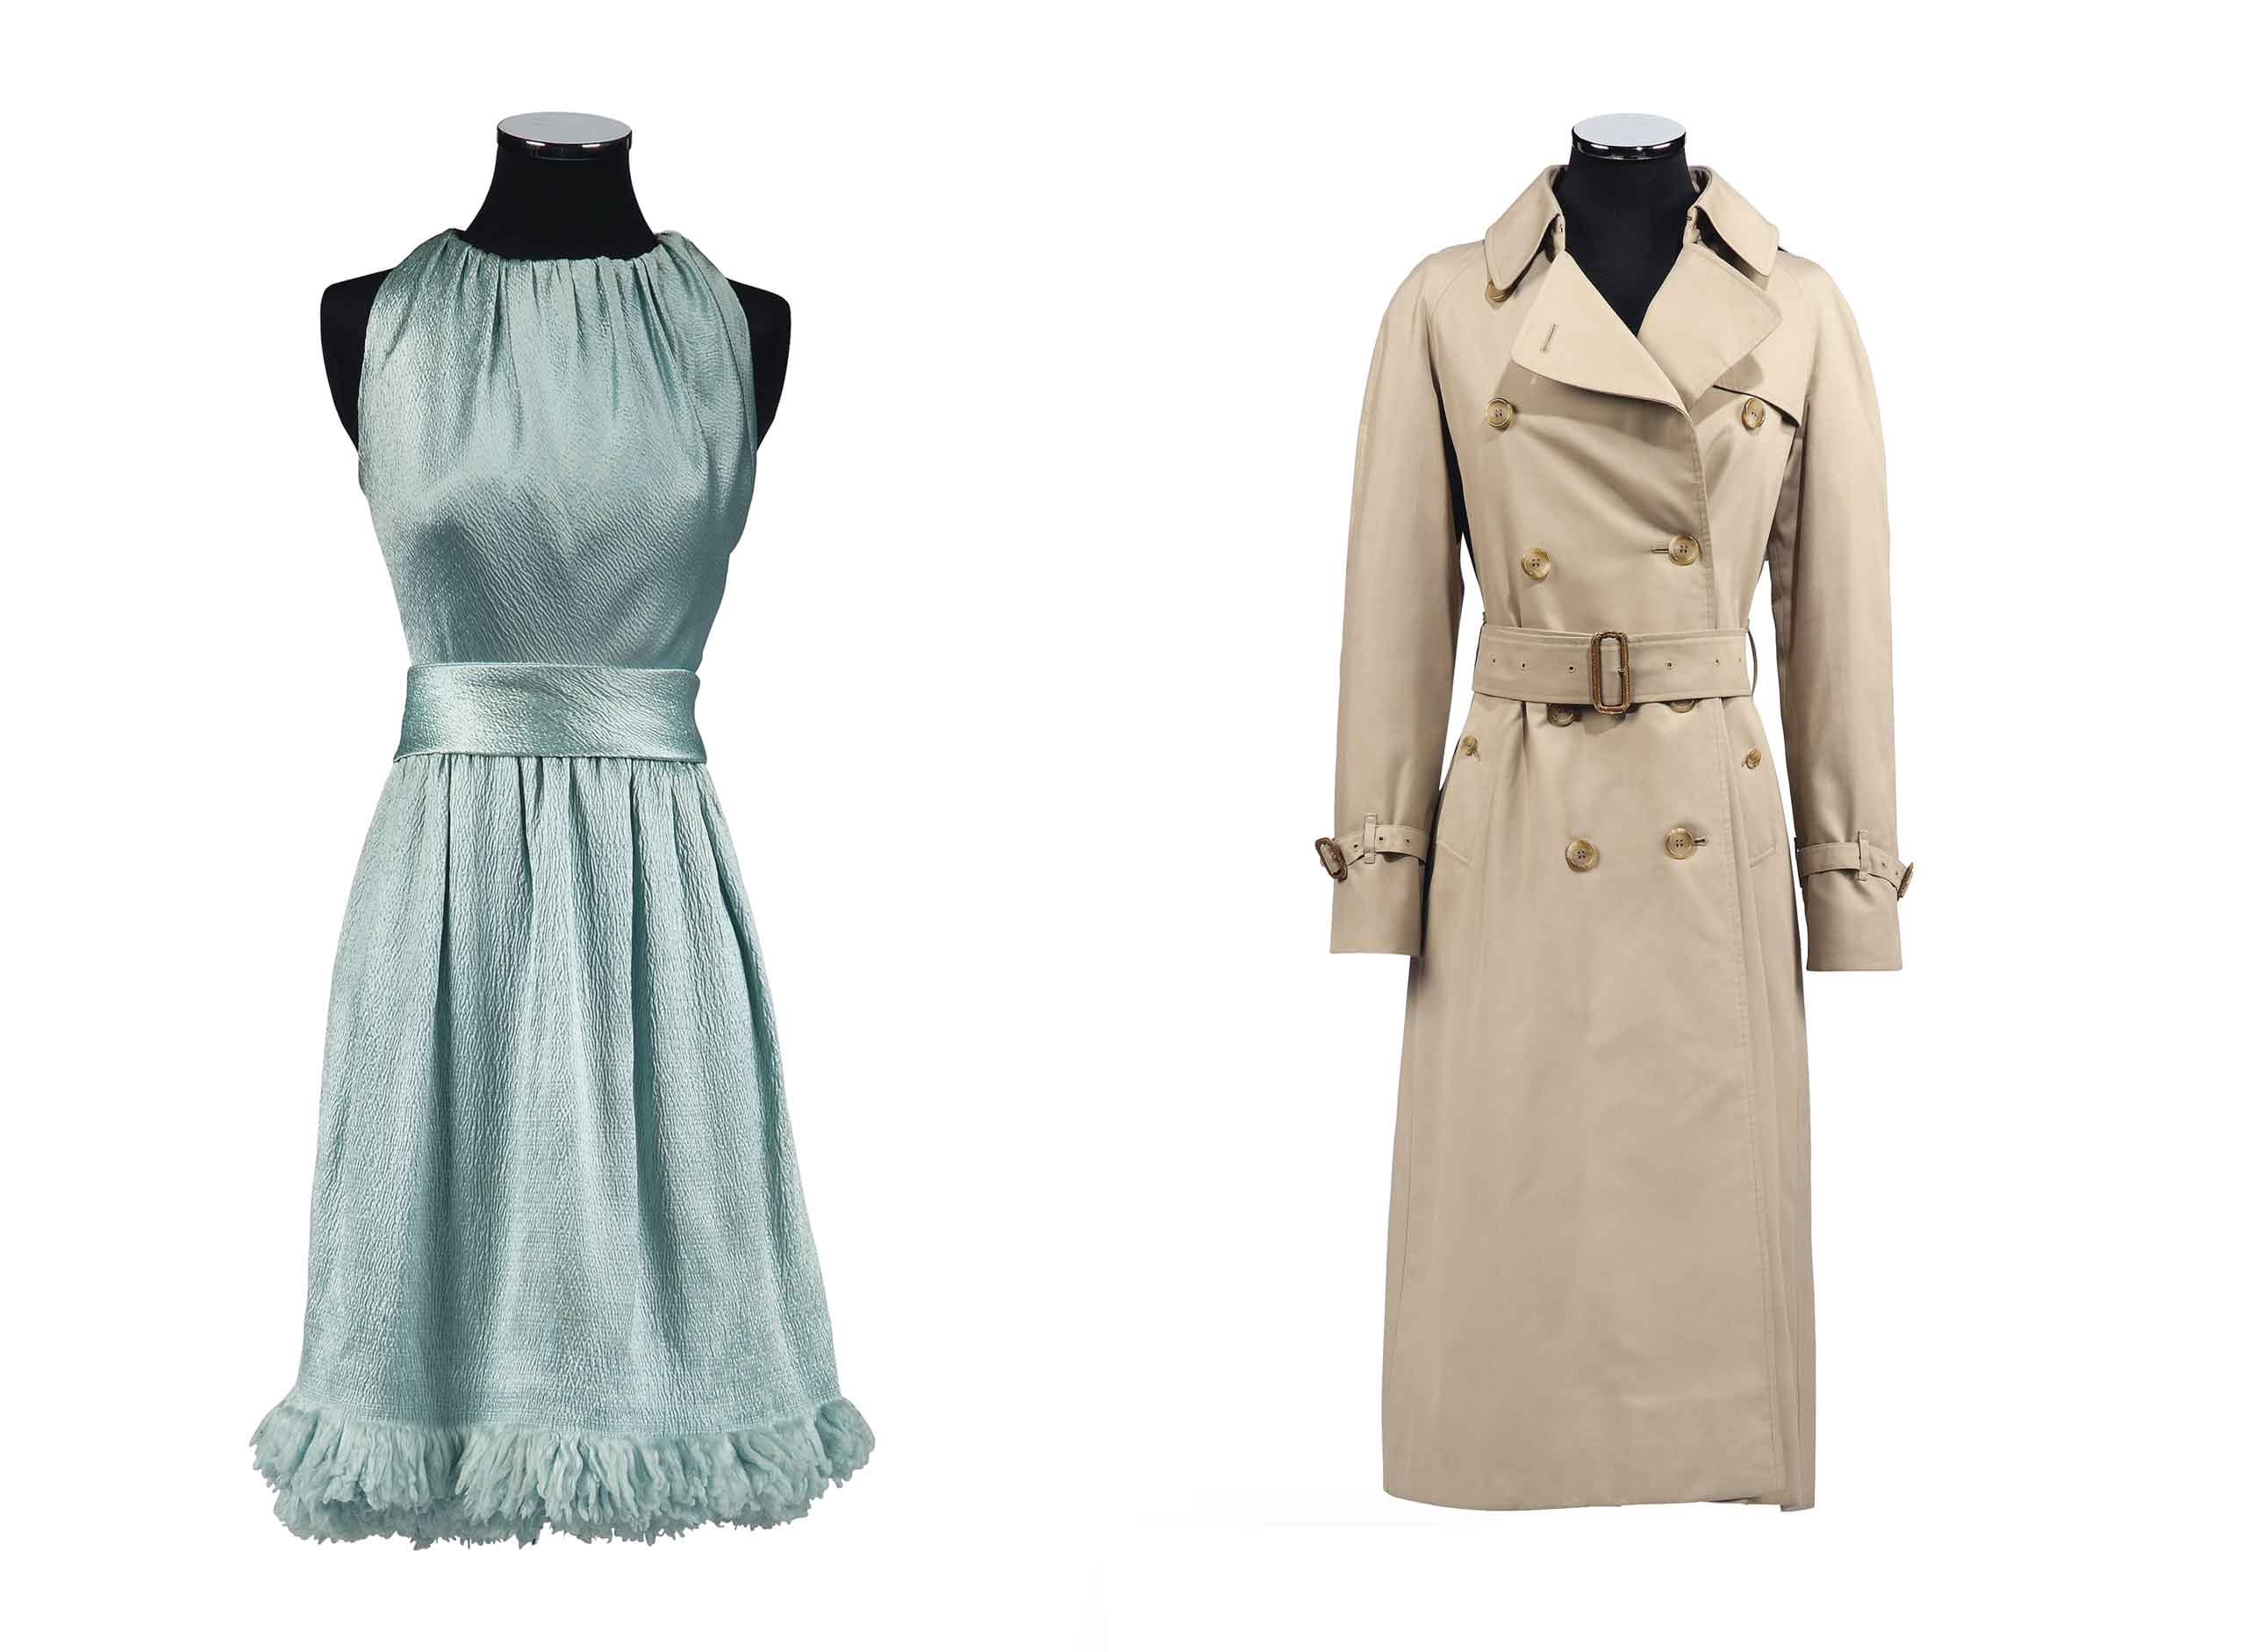 <b>Left: <a href=&quot;http://www.christies.com/lotfinder/textiles-costume/two-for-the-road-1967-a-6100109-details.aspx?from=salesummery&amp;intObjectID=6100109&amp;sid=a6206178-1dea-40e4-ba16-e39232576e6e&quot;>A PALE BLUE CLOQUE SATIN COCKTAIL GOWN</a></br>GIVENCHY COUTURE, AUTUMN-WINTER, 1966-67</br> Gathered onto the neck, with wrapped cummerbund belt, couture tag 33387, worn by Audrey Hepburn in publicity portraits for the 1967 20th Century Fox production Two For The Road</b></br> Estimate: £10,000-15,000</br></br><b>Right: <a href=&quot;http://www.christies.com/lotfinder/textiles-costume/a-three-quarter-length-trench-coat-burberry-early-6100026-details.aspx?from=salesummery&amp;intObjectID=6100026&amp;sid=a6206178-1dea-40e4-ba16-e39232576e6e&quot;>A THREE-QUARTER LENGTH TRENCH COAT</a></br> BURBERRY, EARLY 1980S</b></br> Lined in iconic Burberry cotton plaid, with leather buckles, double-breasted</br>Estimate: £6,000-9,000